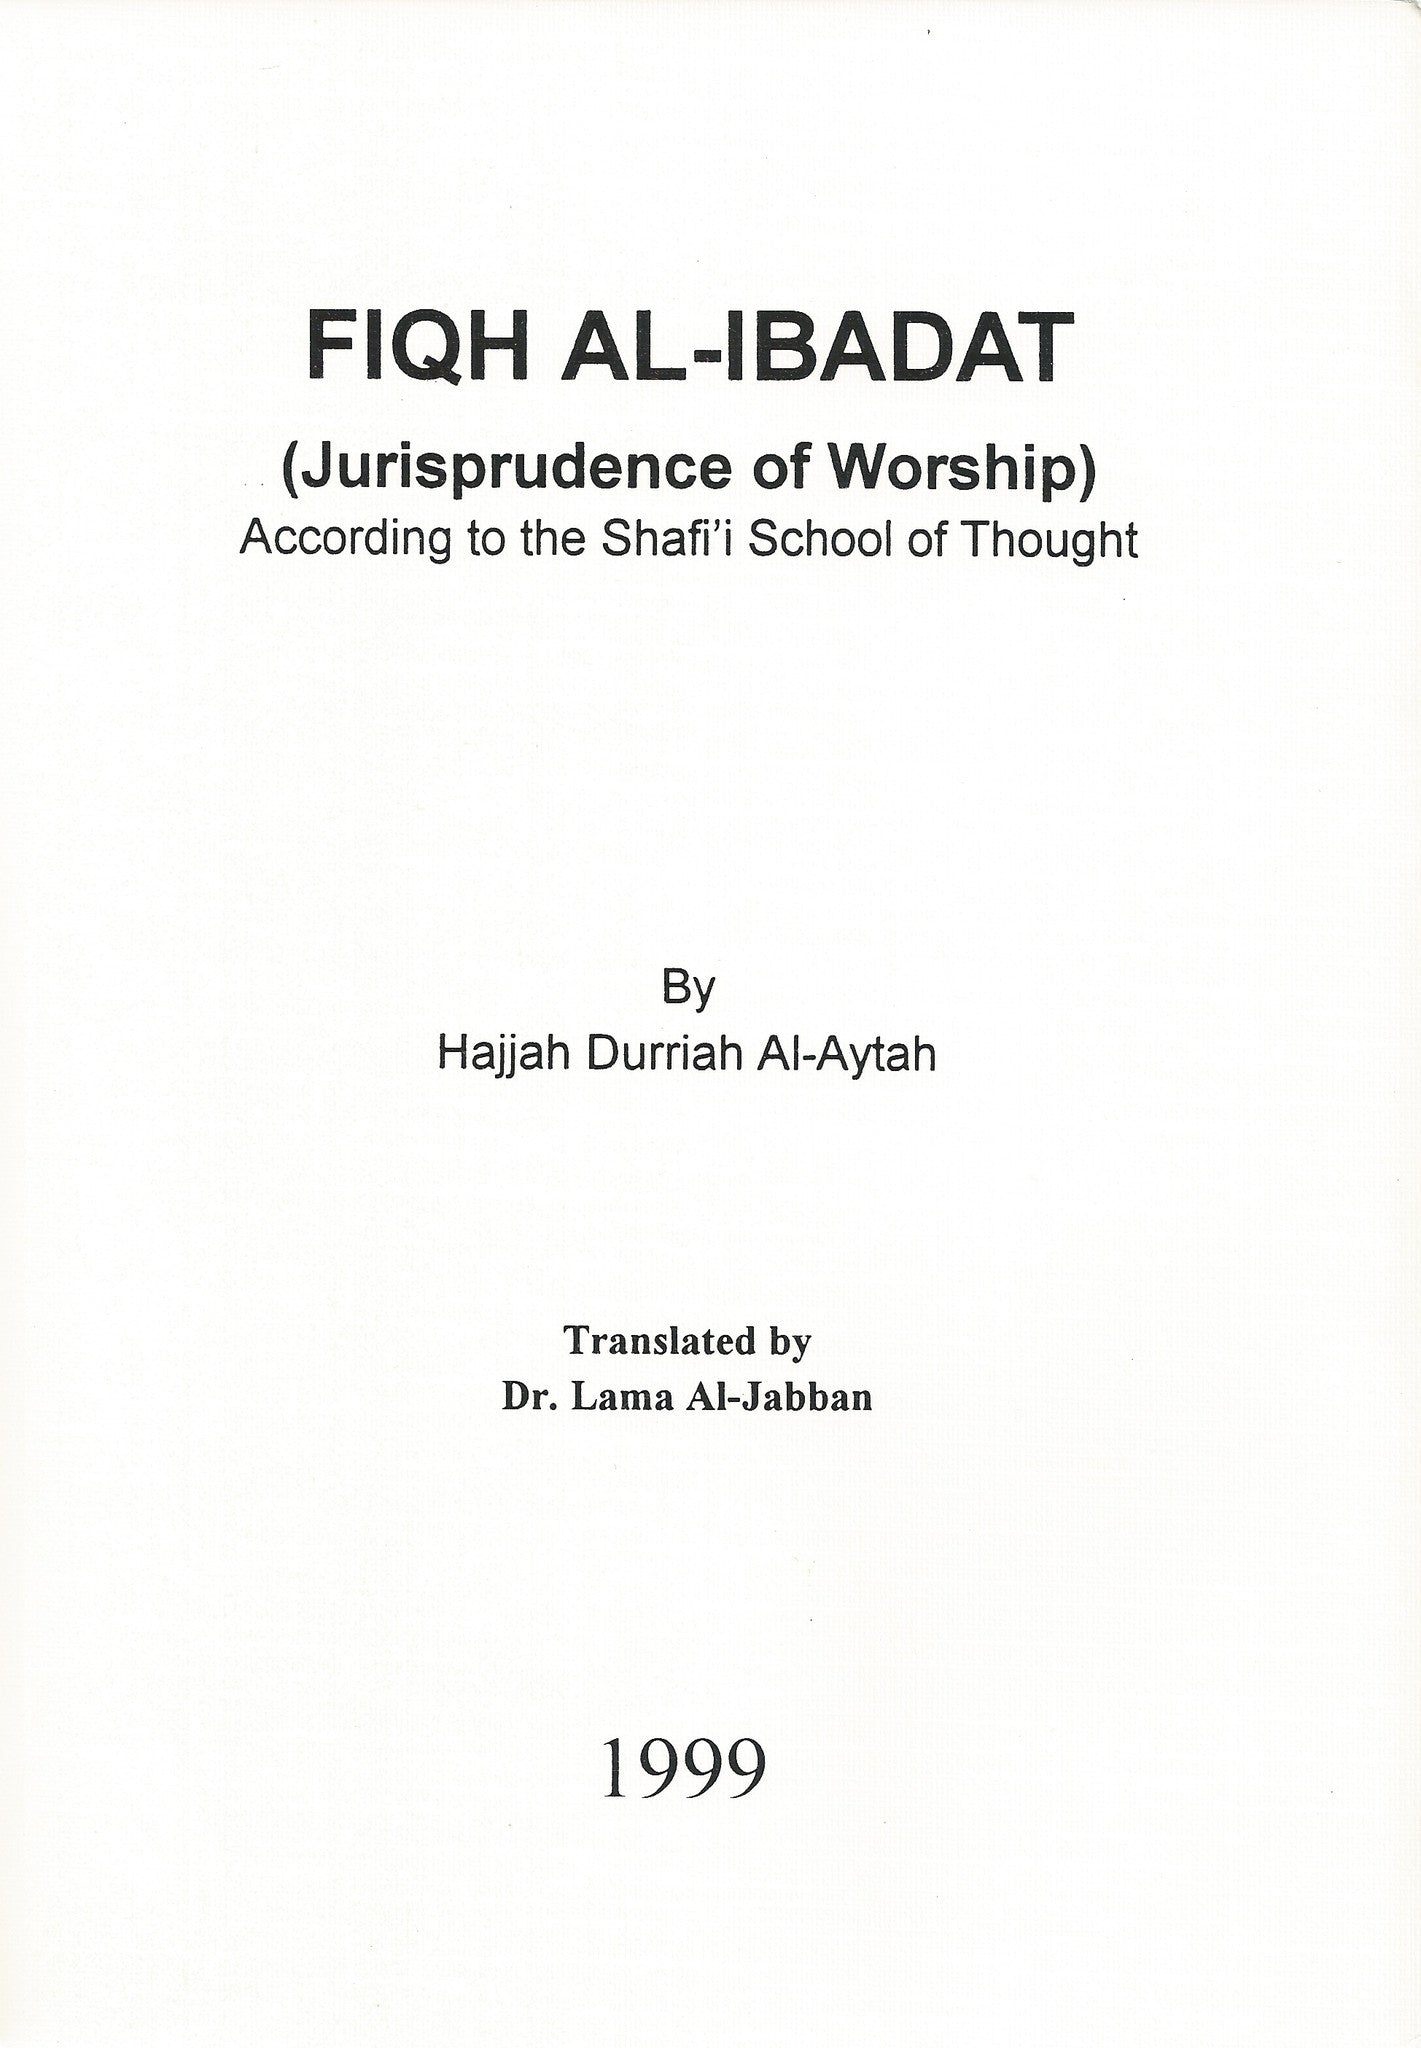 Fiqh al-Ibadat (English) - Jurisprudence of Worship According to the Shafi'i School of Thought , Book - Daybreak International Bookstore, Daybreak Press Global Bookshop